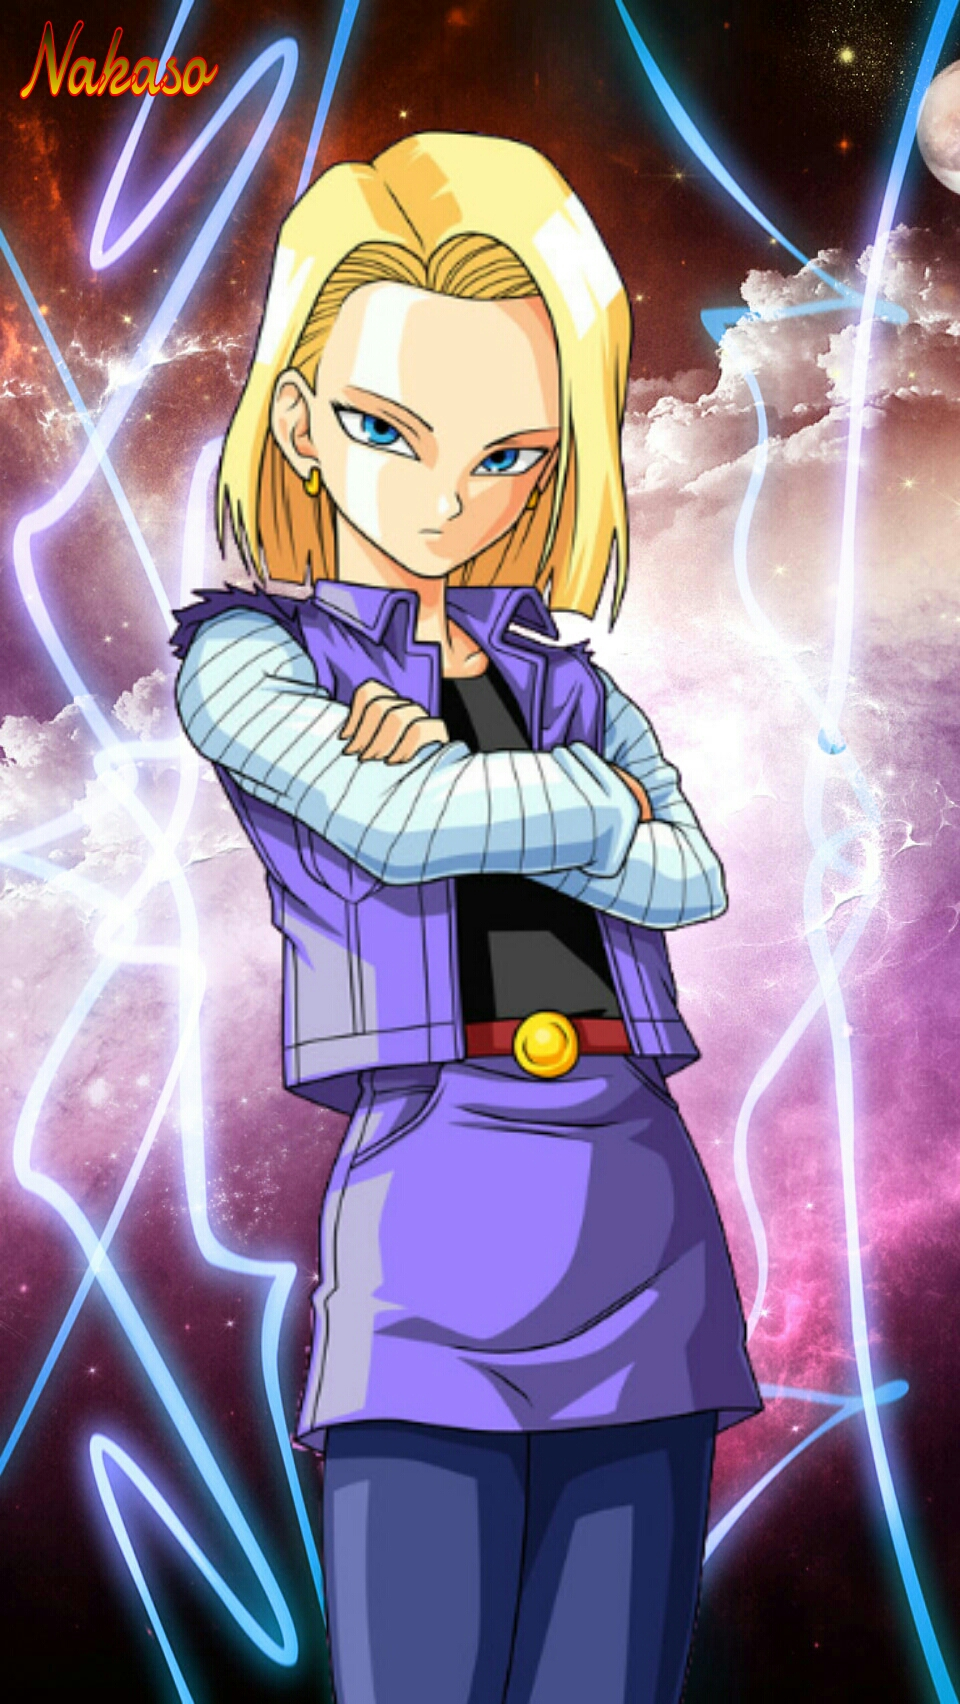 Dbz Android 18 Wallpaper By Nakaso On Deviantart